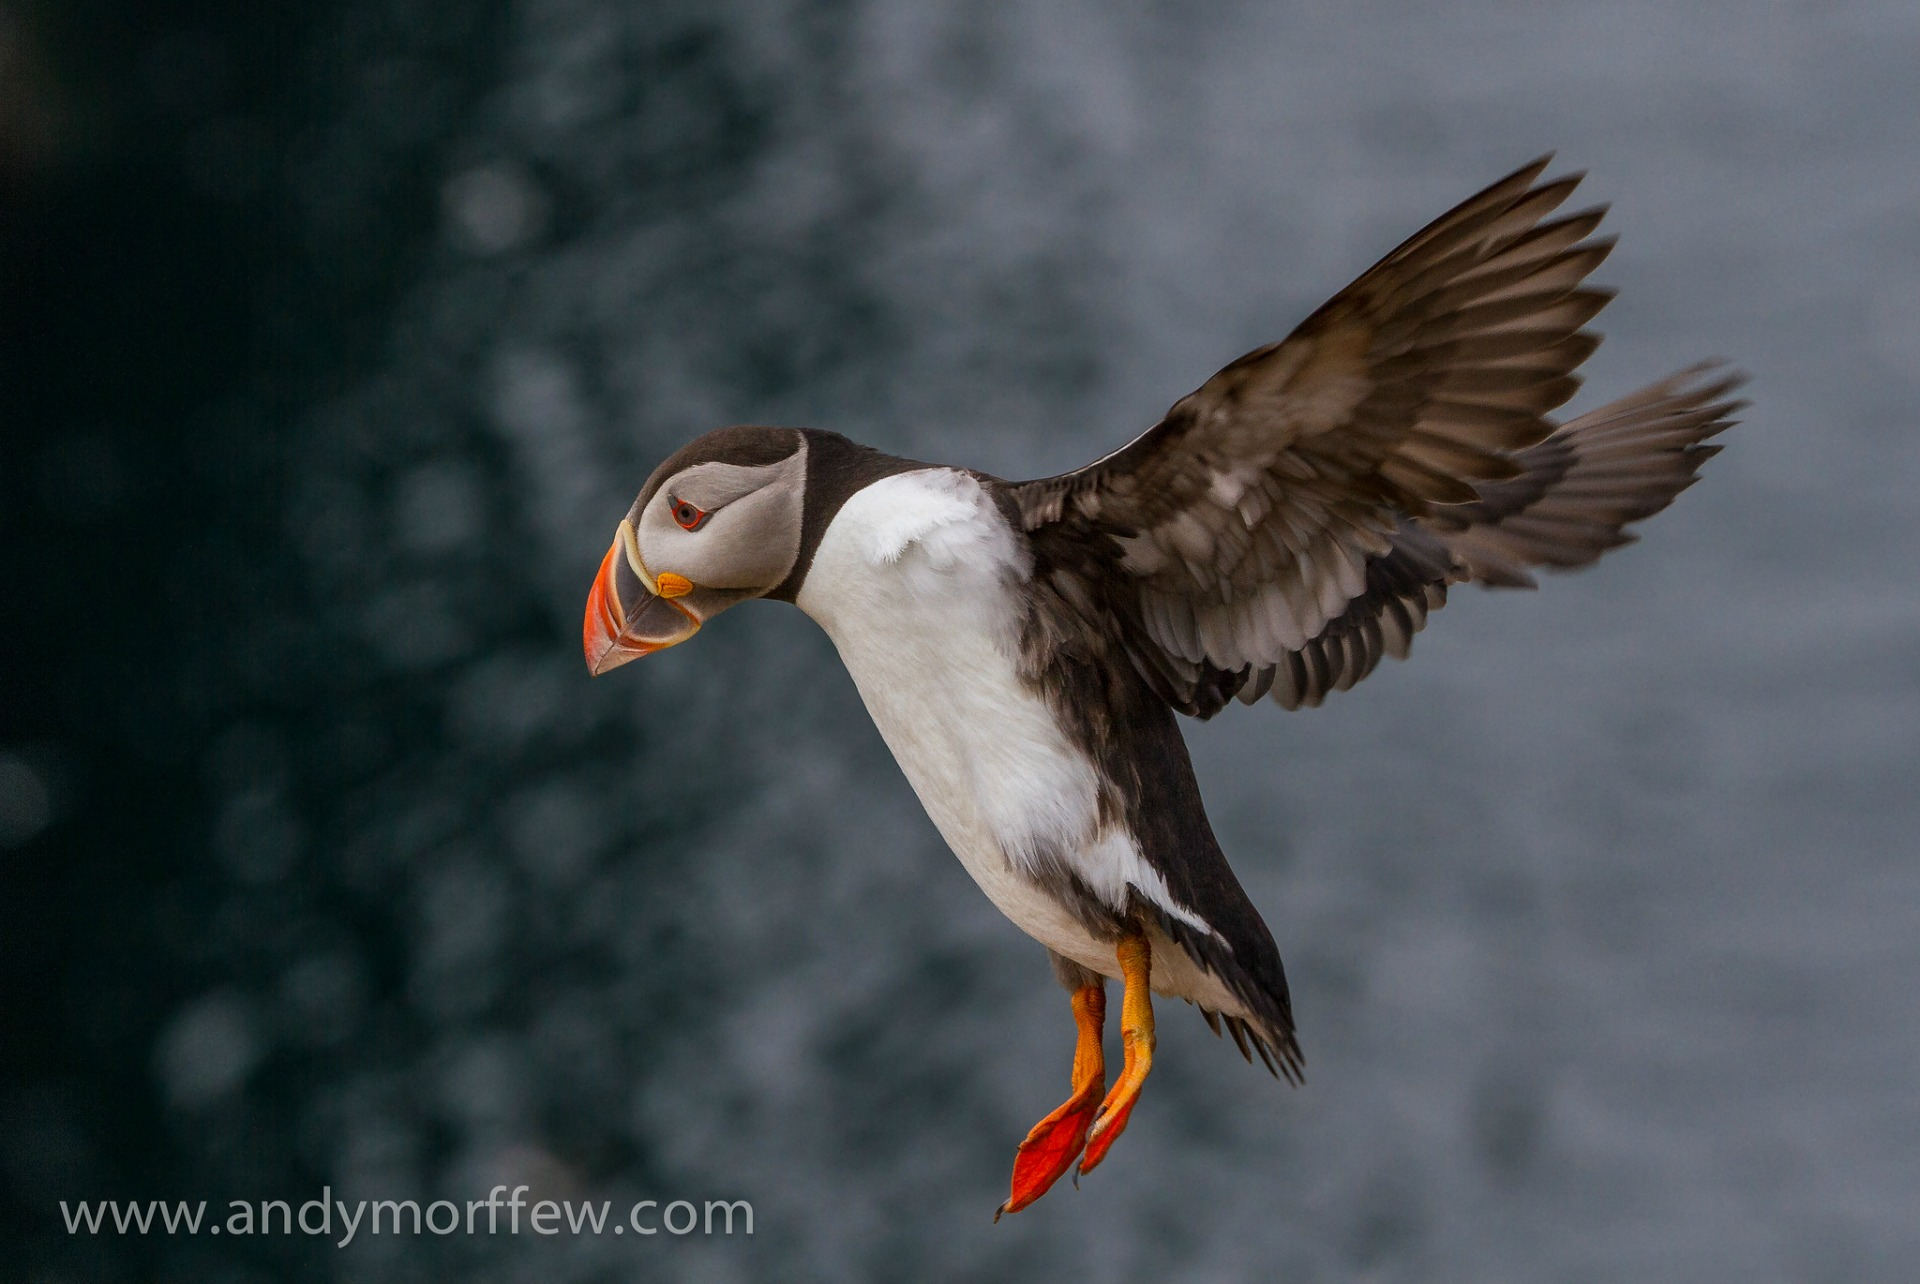 Should the puffin be the UK's national bird?